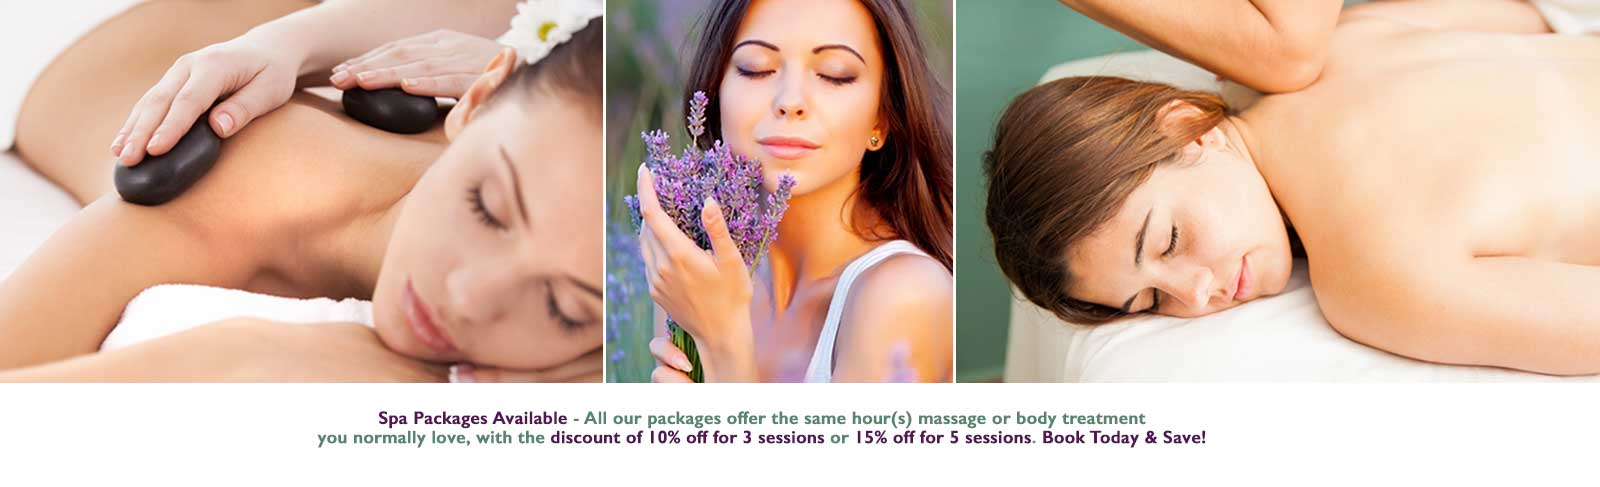 To make our massages and our most popular body treatments an even more affordable luxury, we happily introduce our spa packages with the discount of 20% off for 3 sessions or 25% off for 5 sessions!